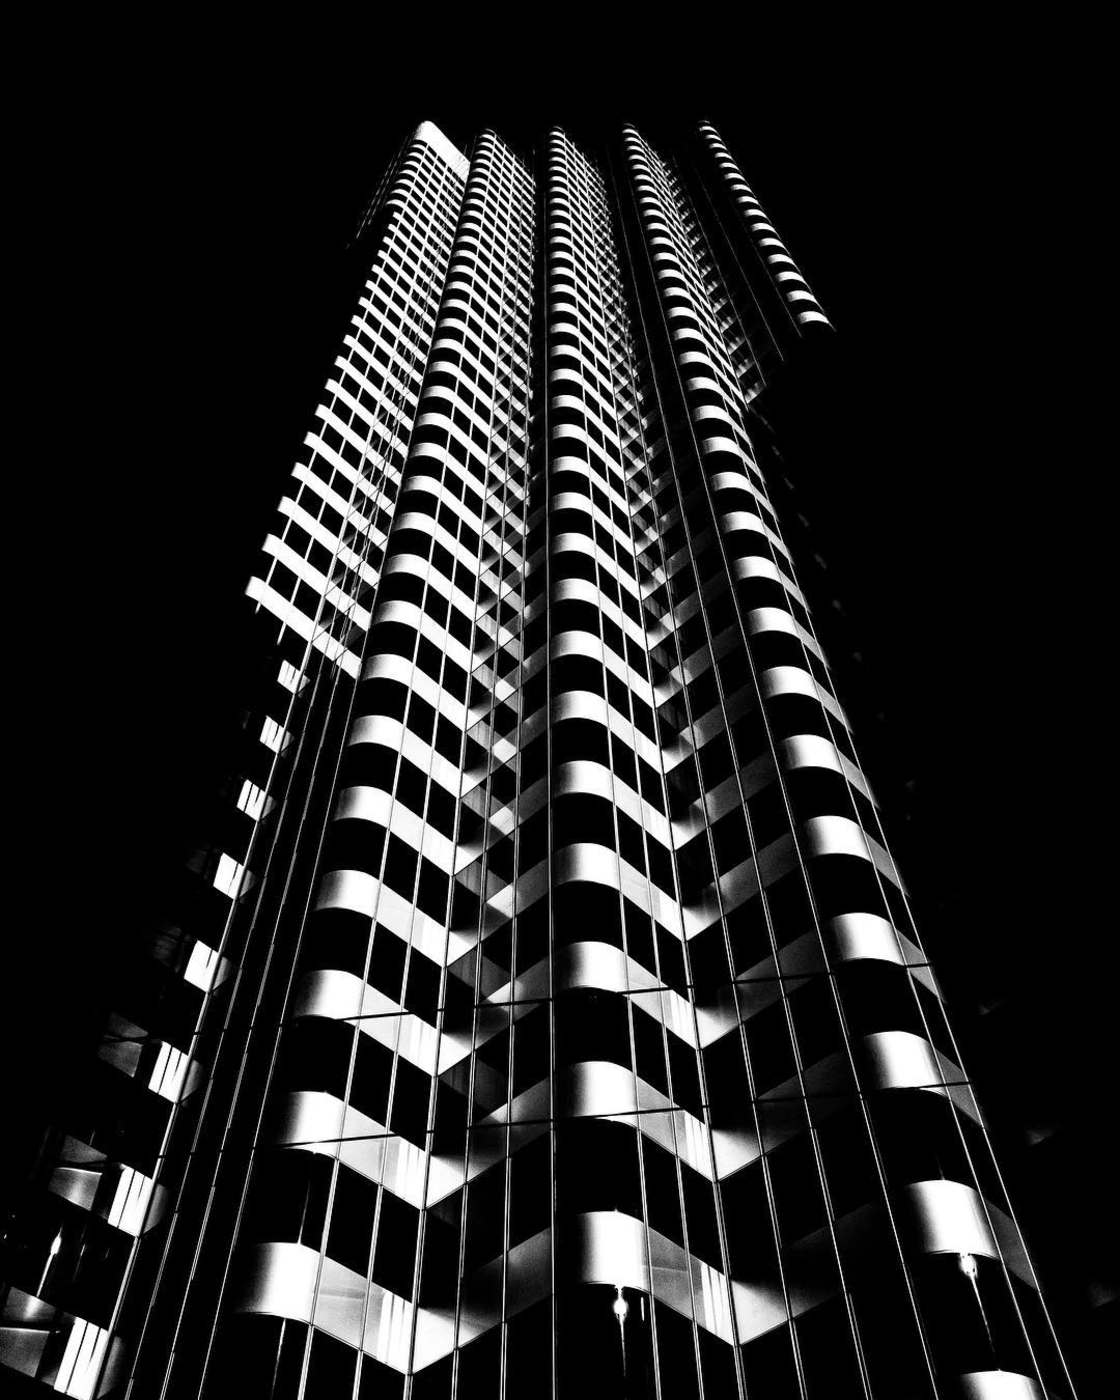 San Francisco Noir - The architecture photos of Burton Rast